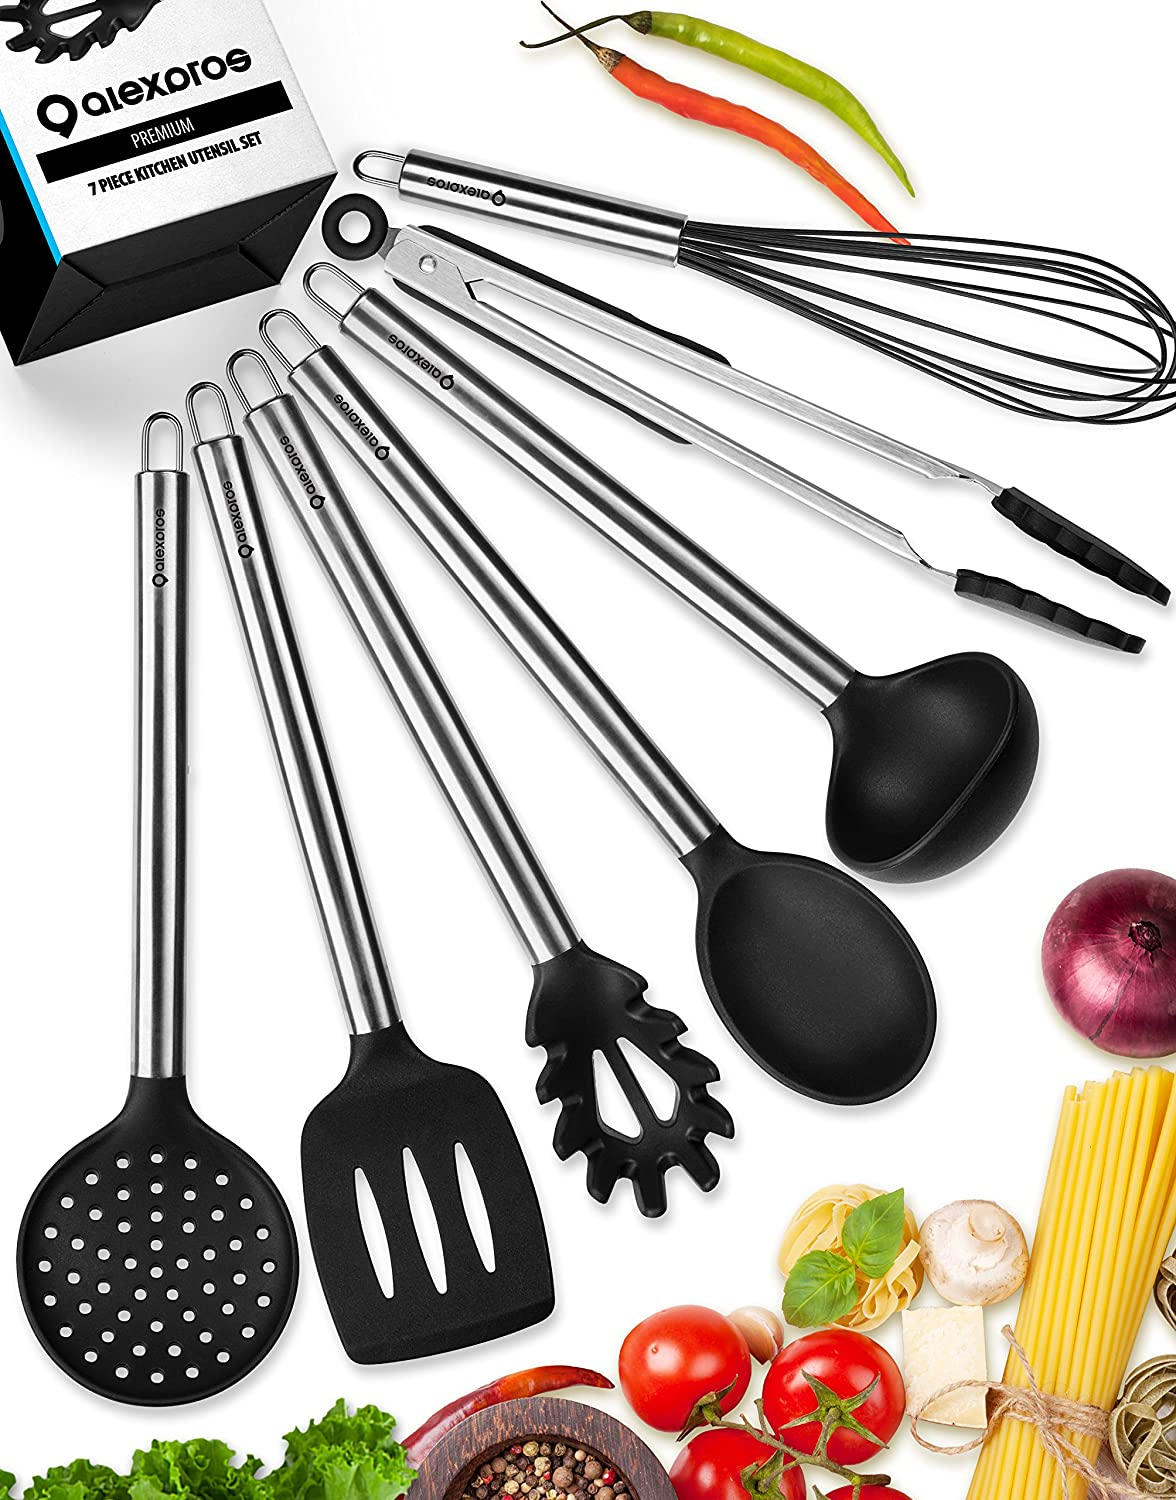 Amazon.com: Kitchen Utensils Set - Silicone Cooking Utensils Set ...